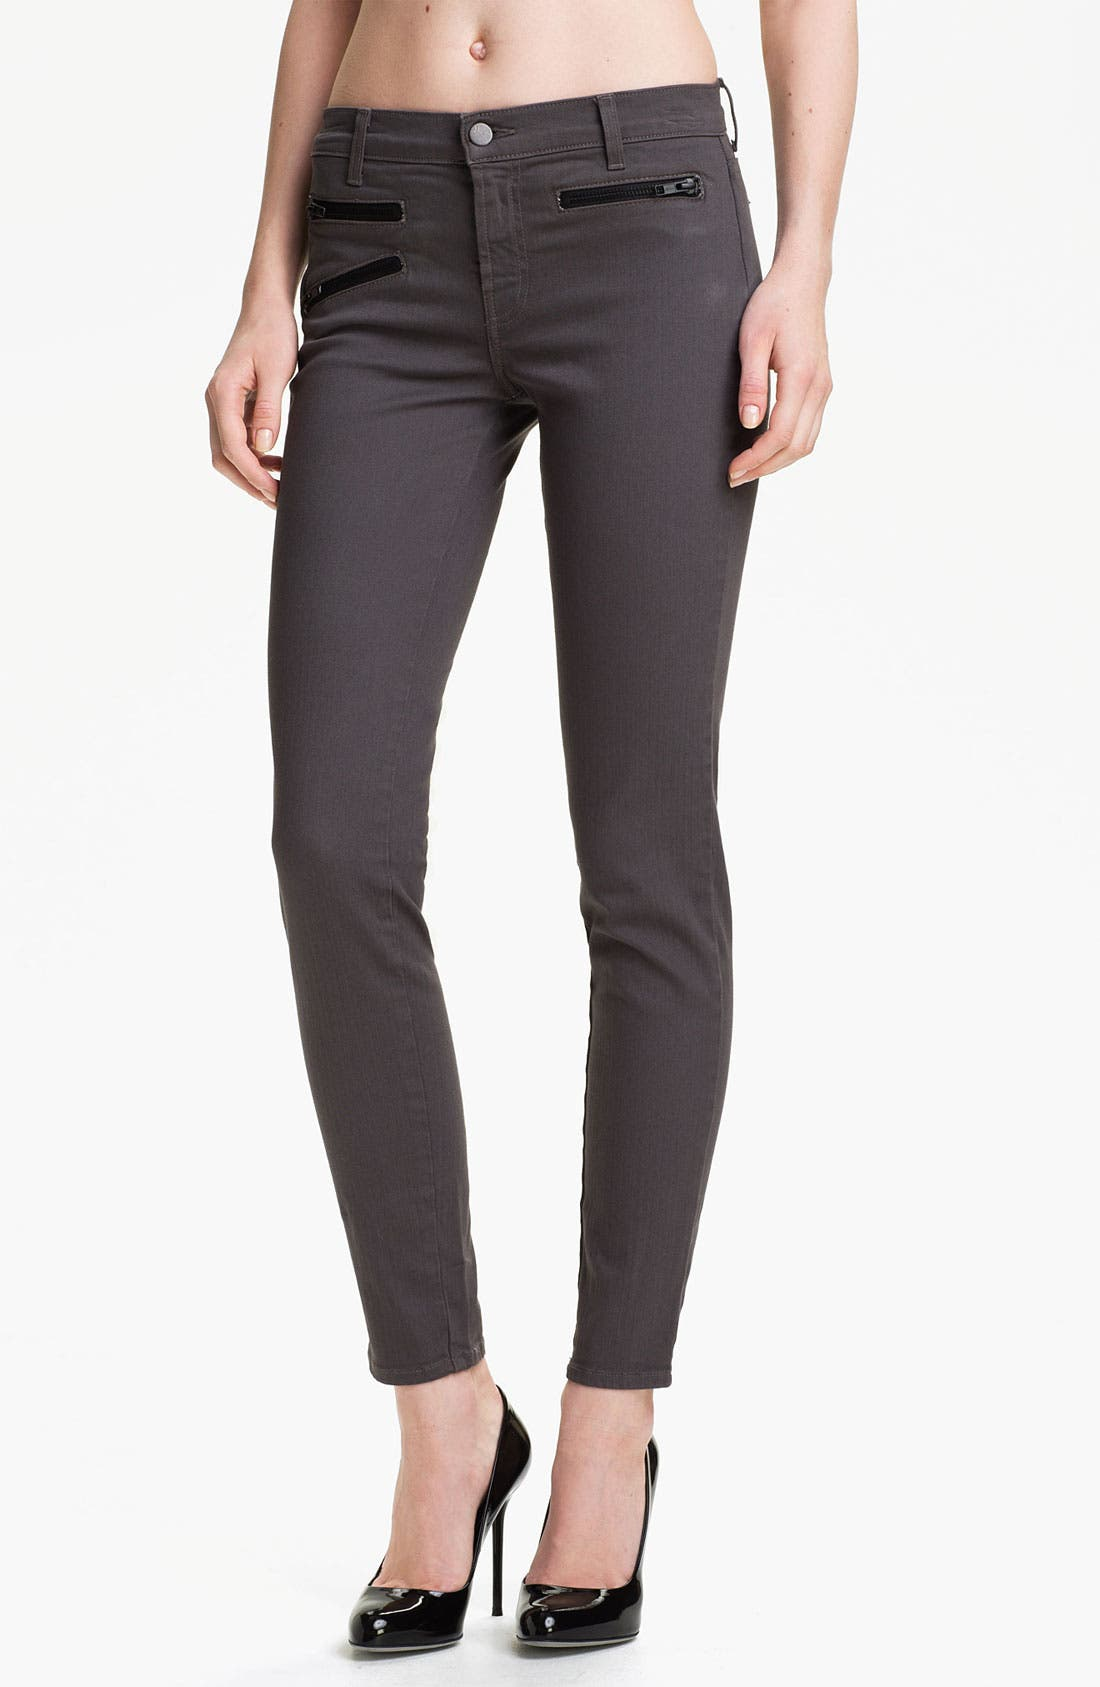 Alternate Image 1 Selected - J Brand 'Zoey' Skinny Jeans